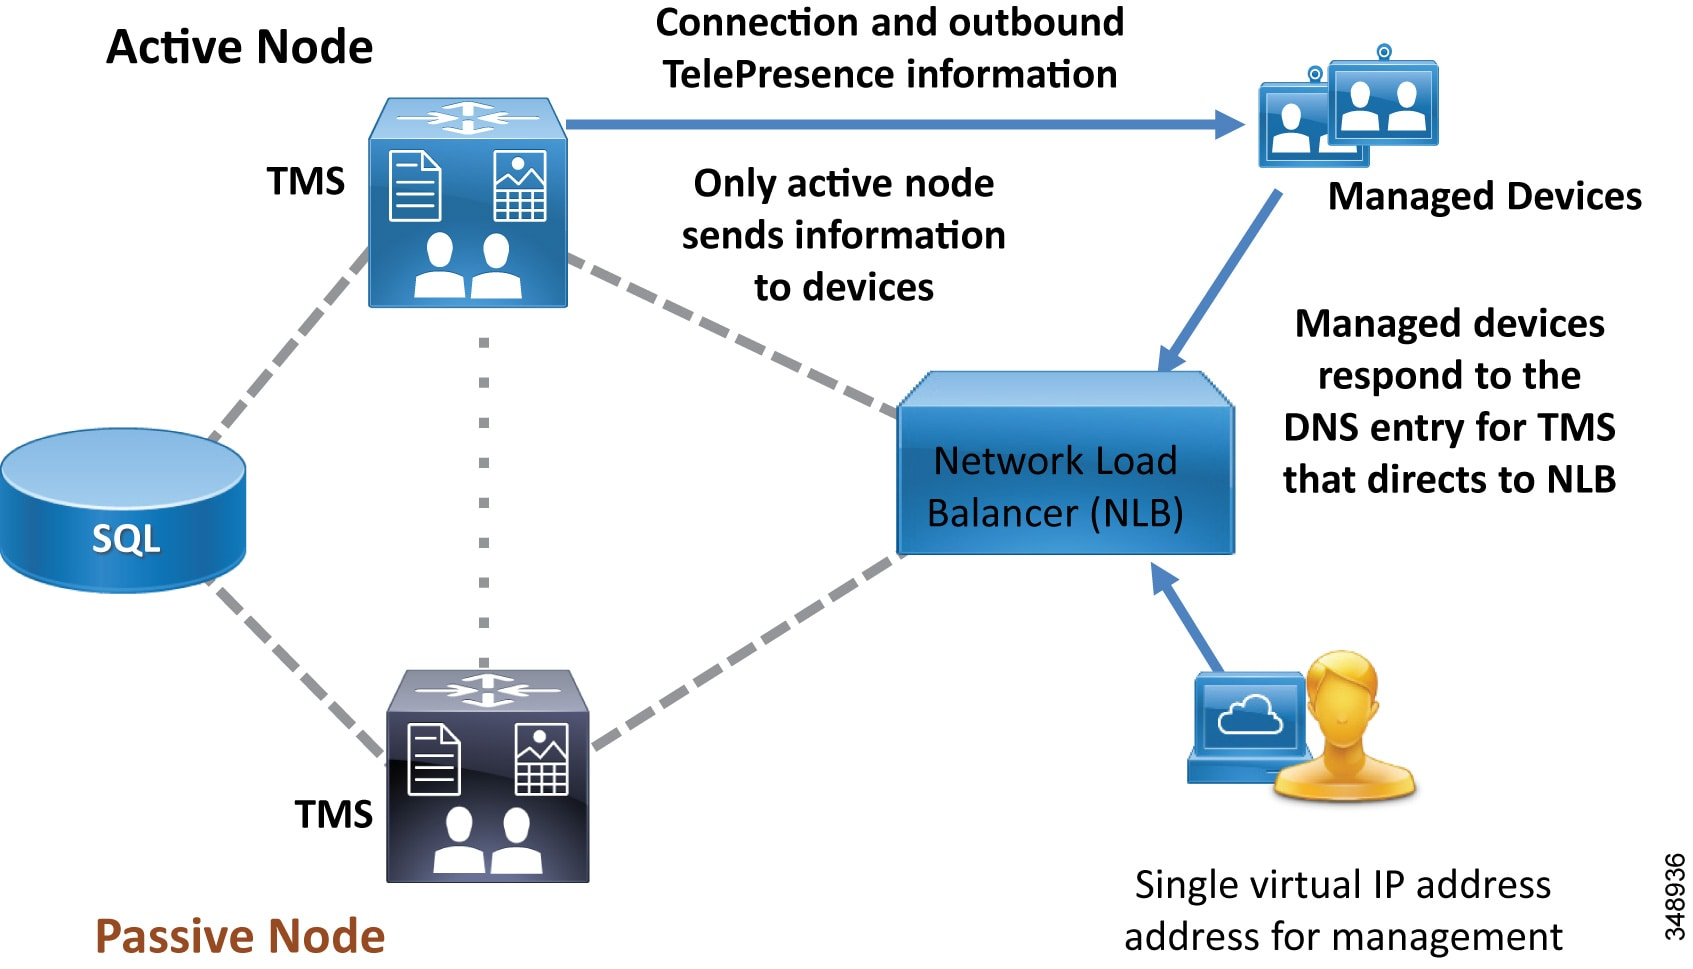 Cisco Preferred Architecture For Enterprise Collaboration 116 Cvd Passive Networks Intuitive Explanation Filters Electrical Figure 3 16 Nlb Directs Communications From Managed Devices To The Active Tms Node